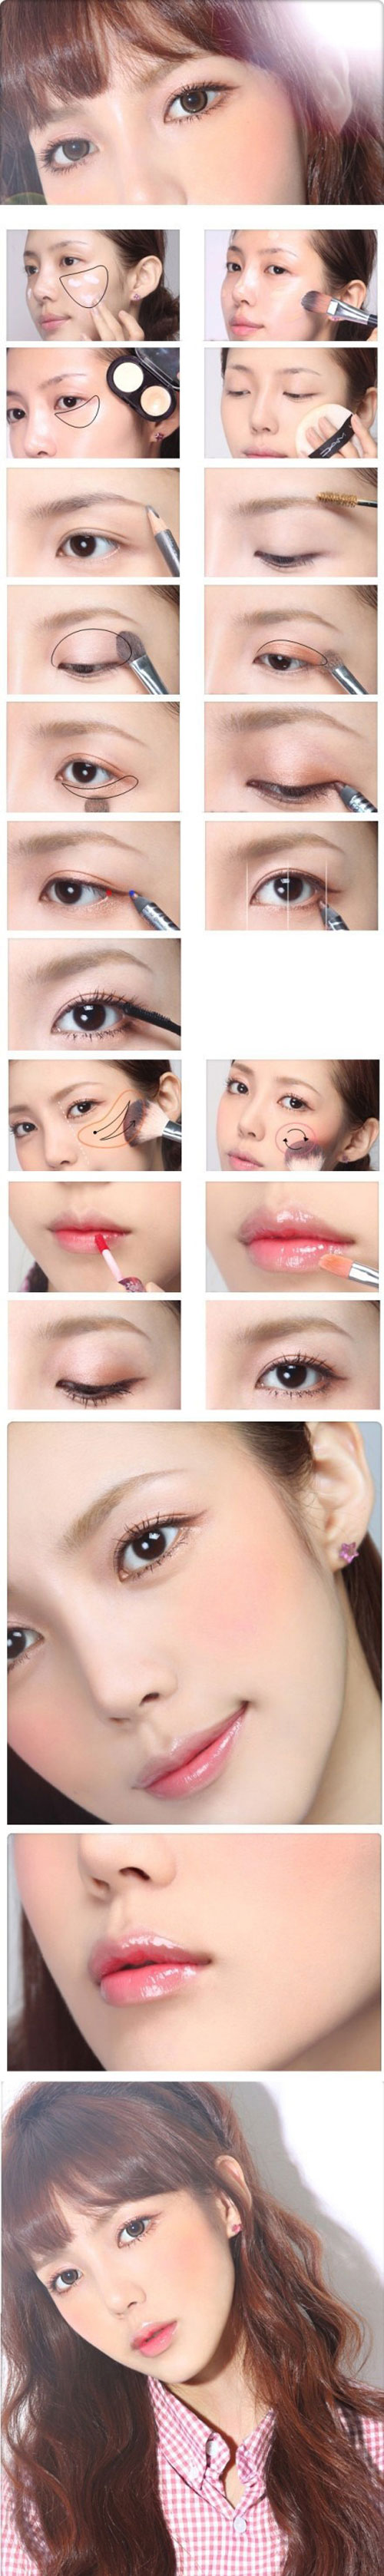 25-Spring-Makeup-Tutorial-2015-10